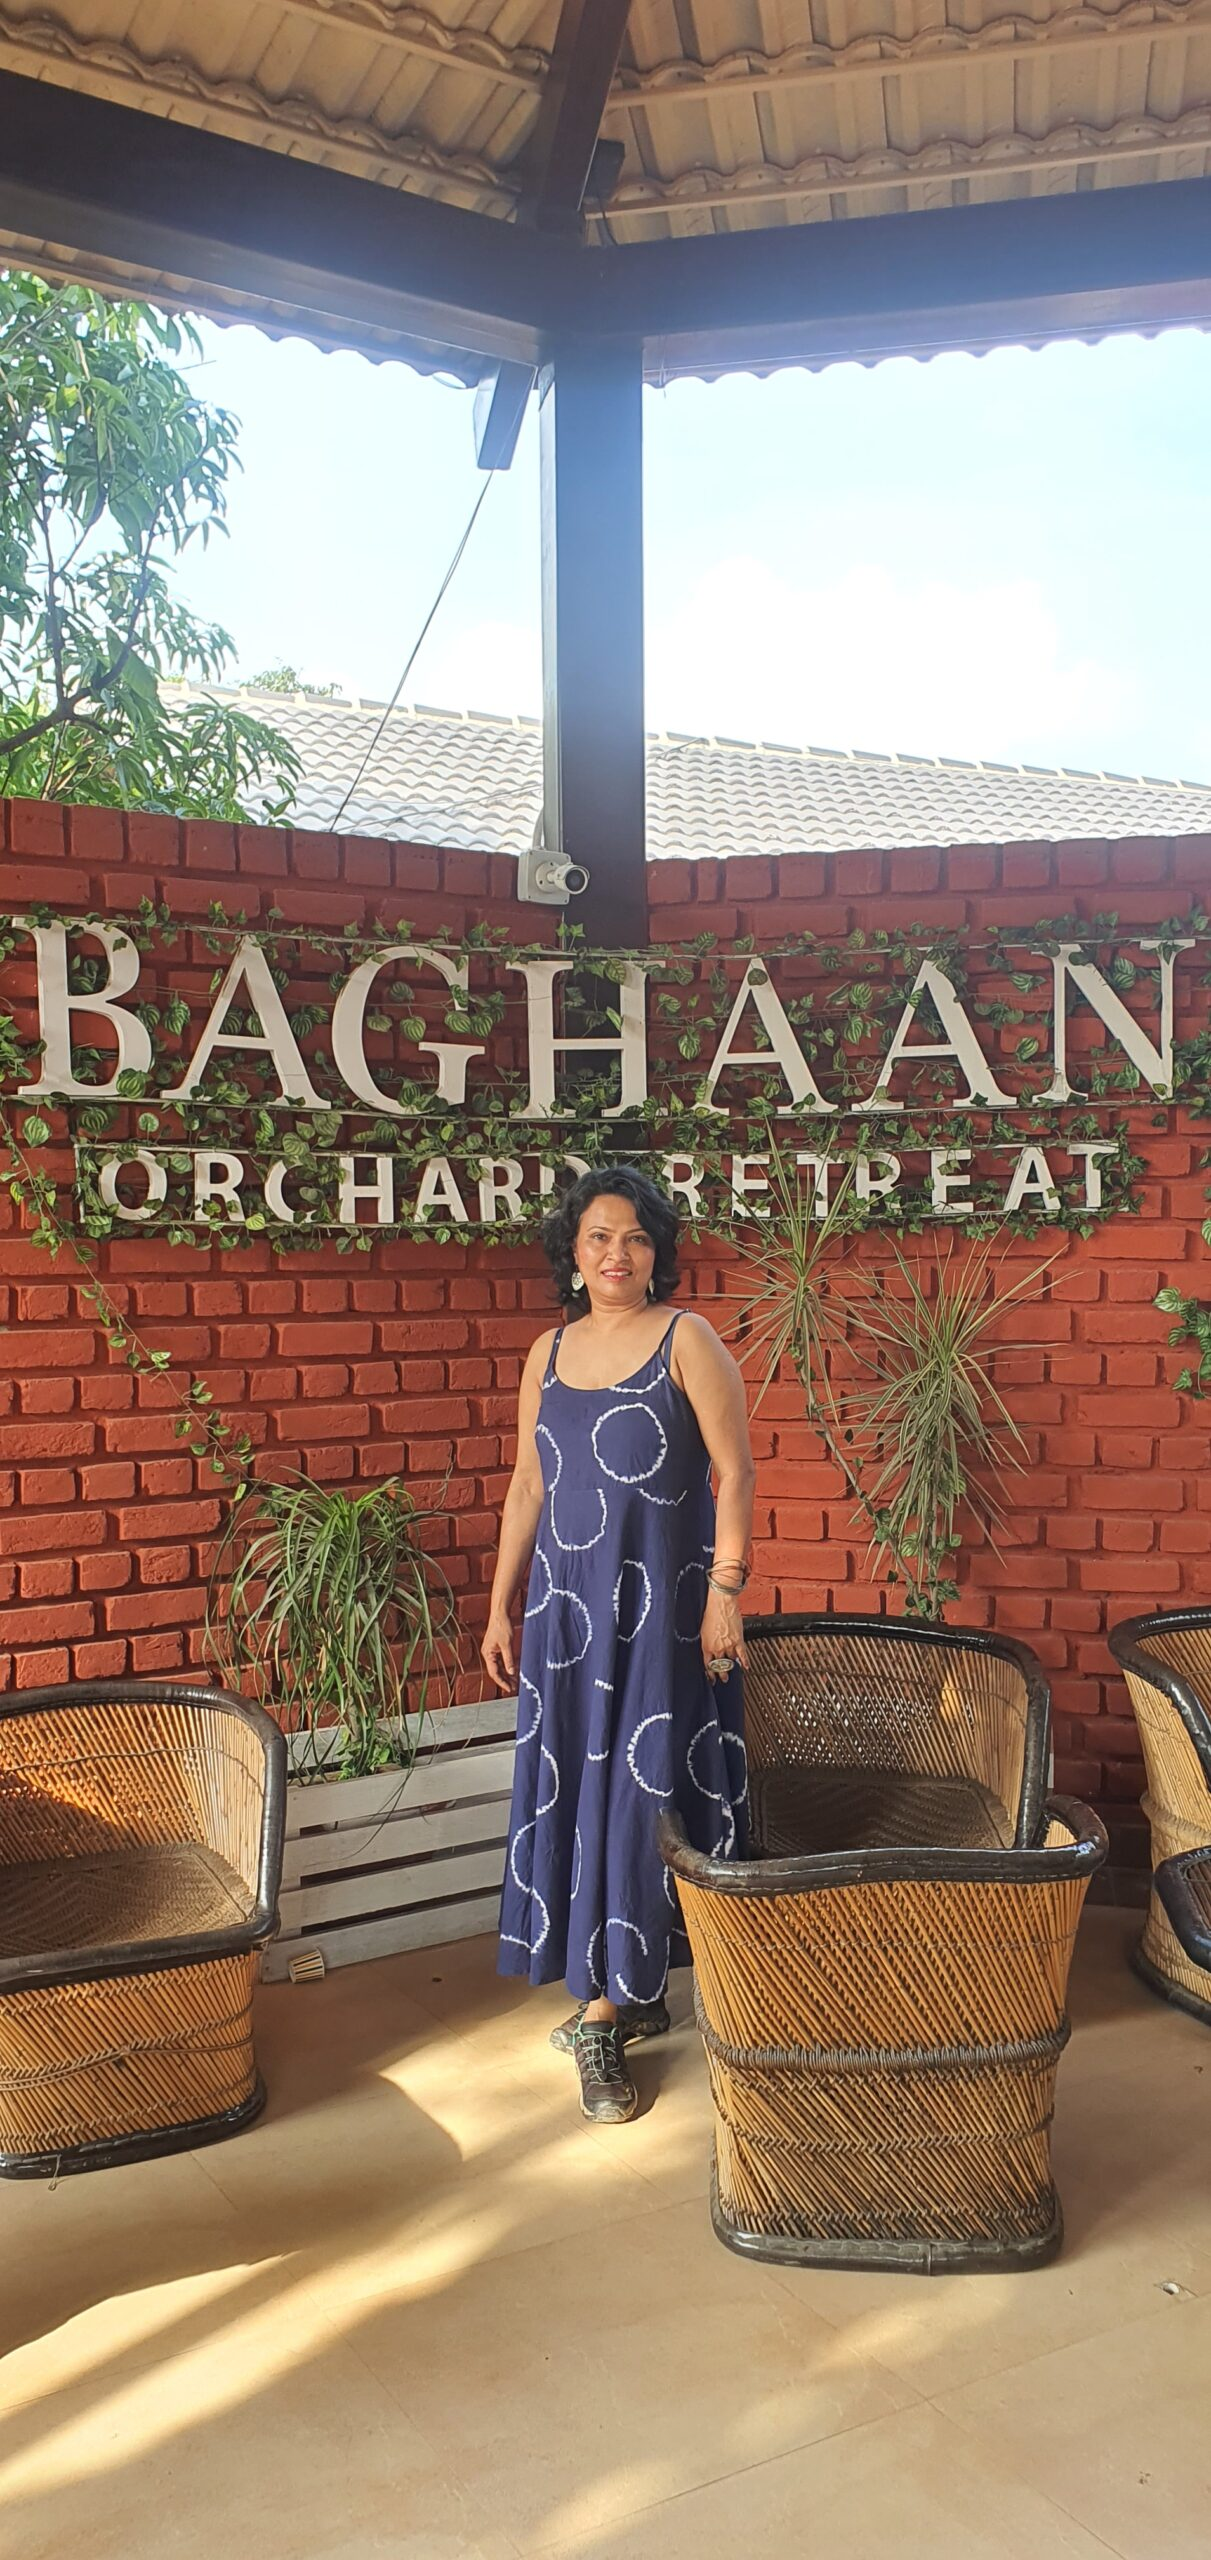 Baghaan The orchard retreat…a treat for urban souls